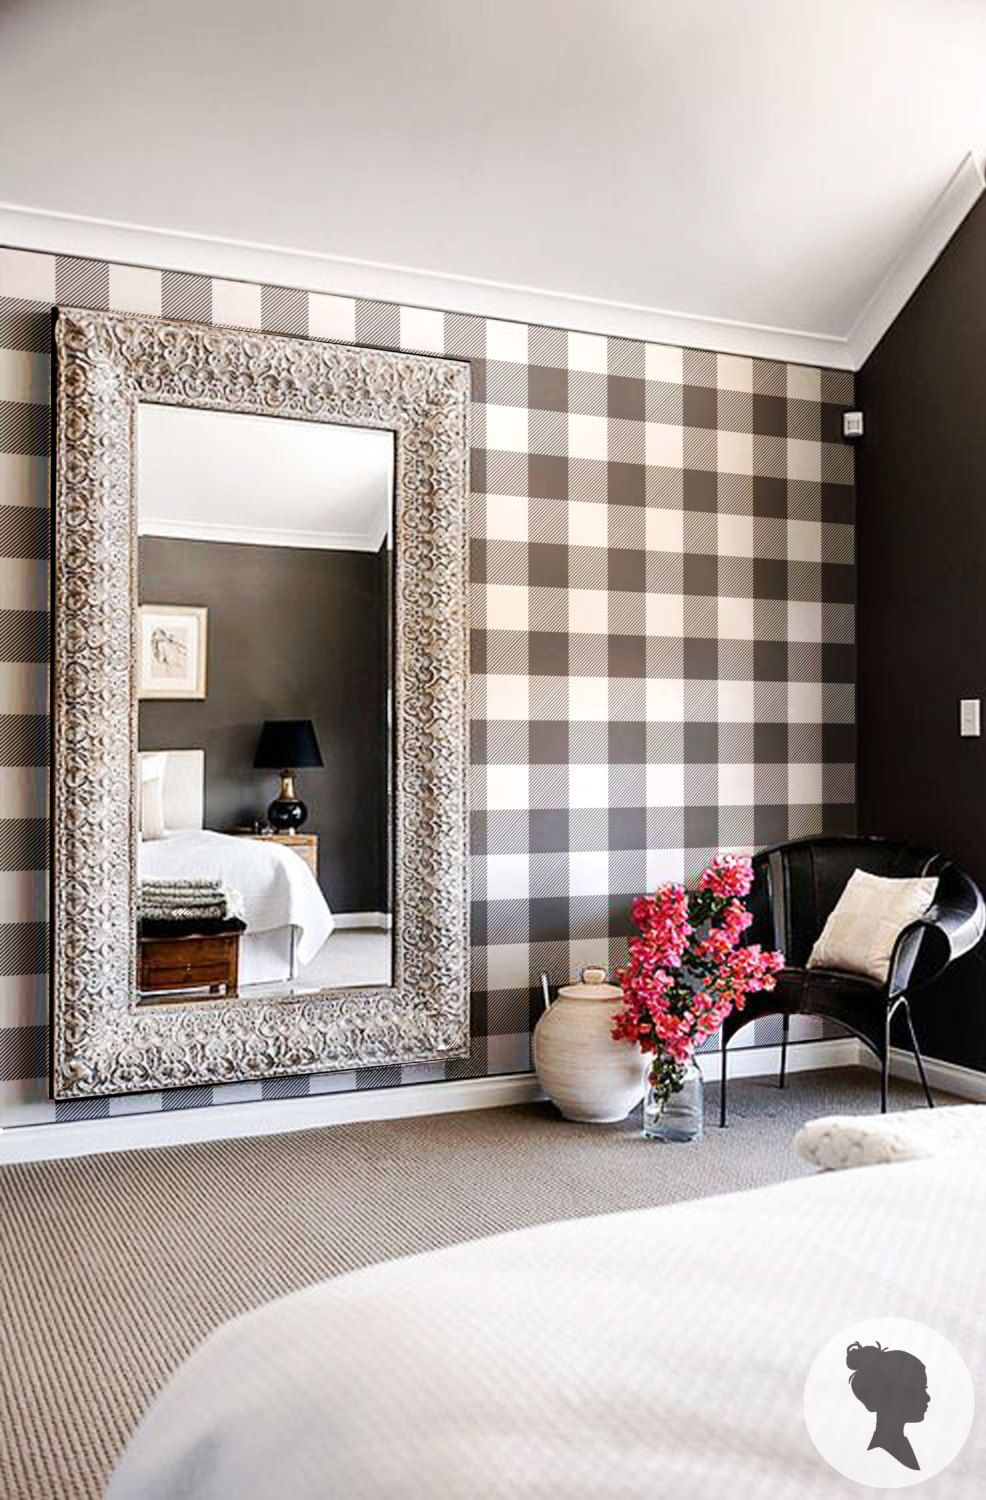 Best Gingham Removable Wallpaper Buffalo Check Plaid Self 400 x 300